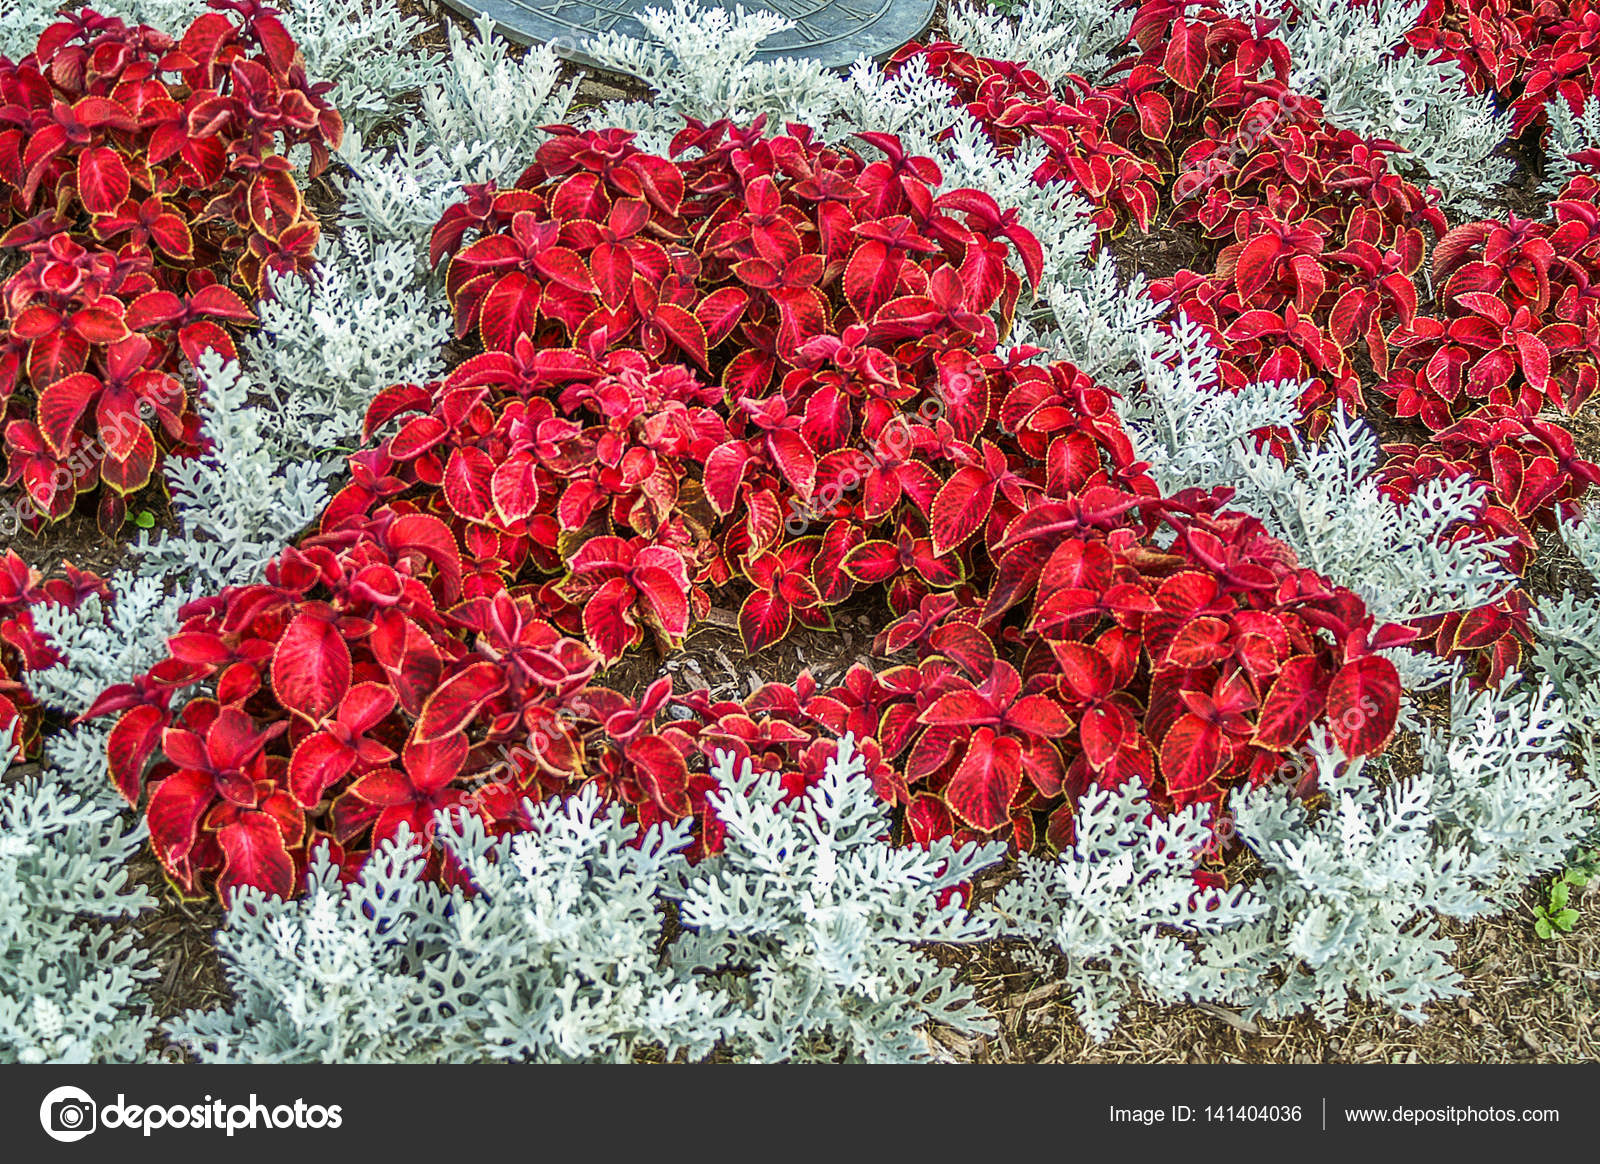 Red Coleus And Dusty Miller Plants Stock Photo Mtsue 141404036